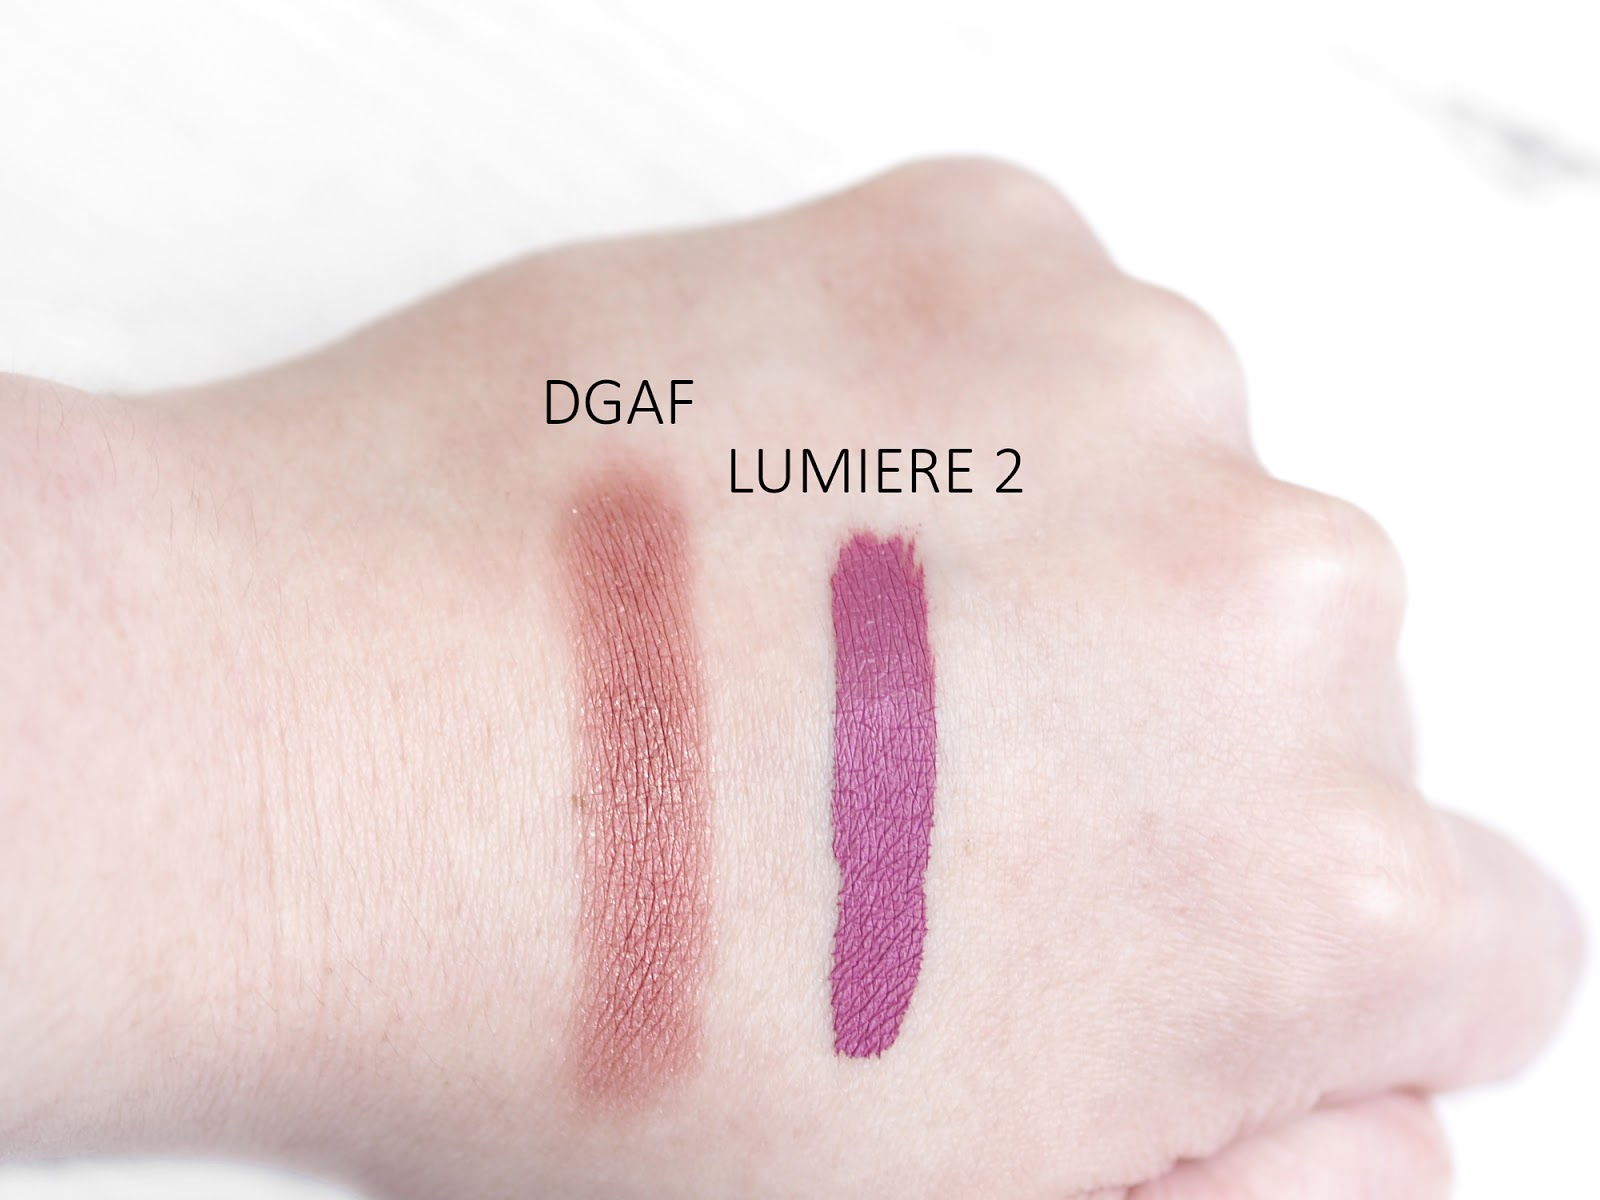 ColourPop Lumiere 2 DGAF Swatches